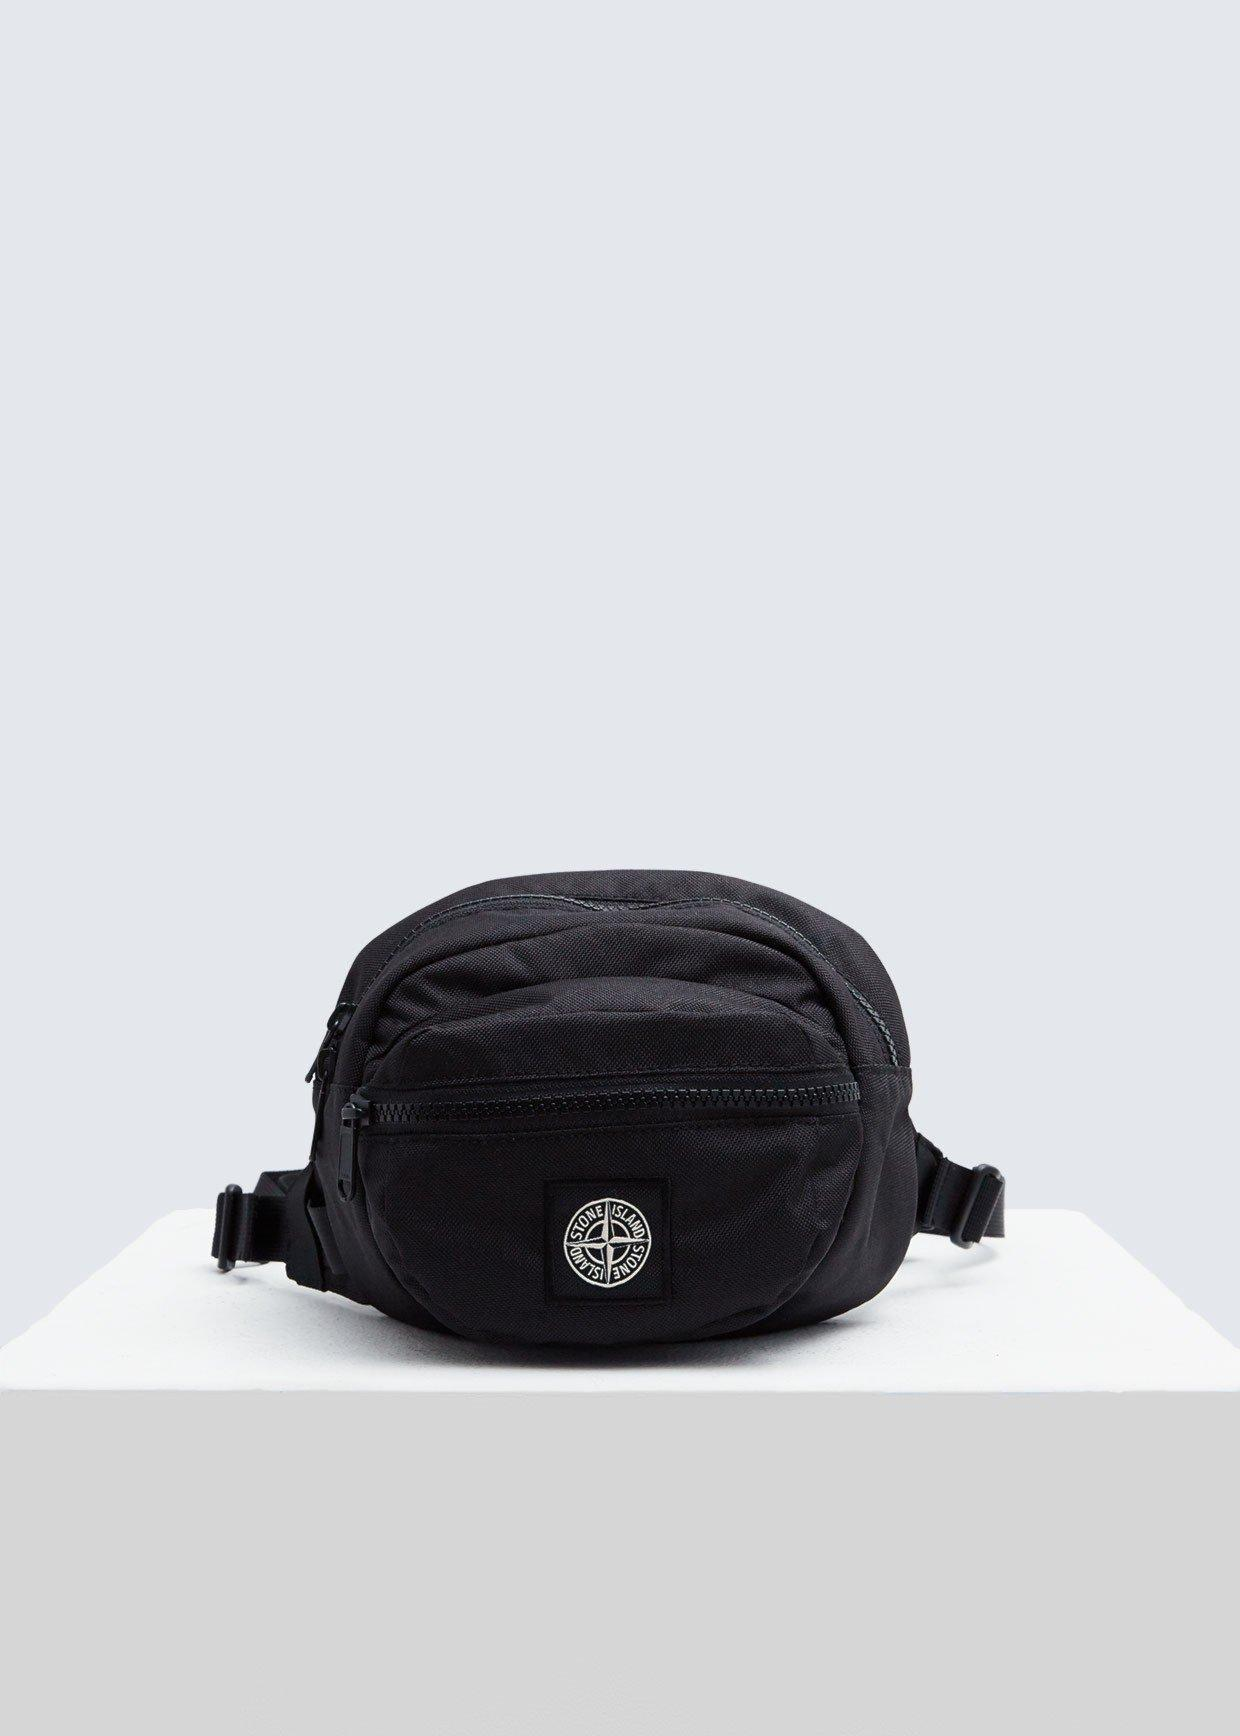 ed83aed298f9 Lyst - Stone Island Chest Bumbag in Black for Men